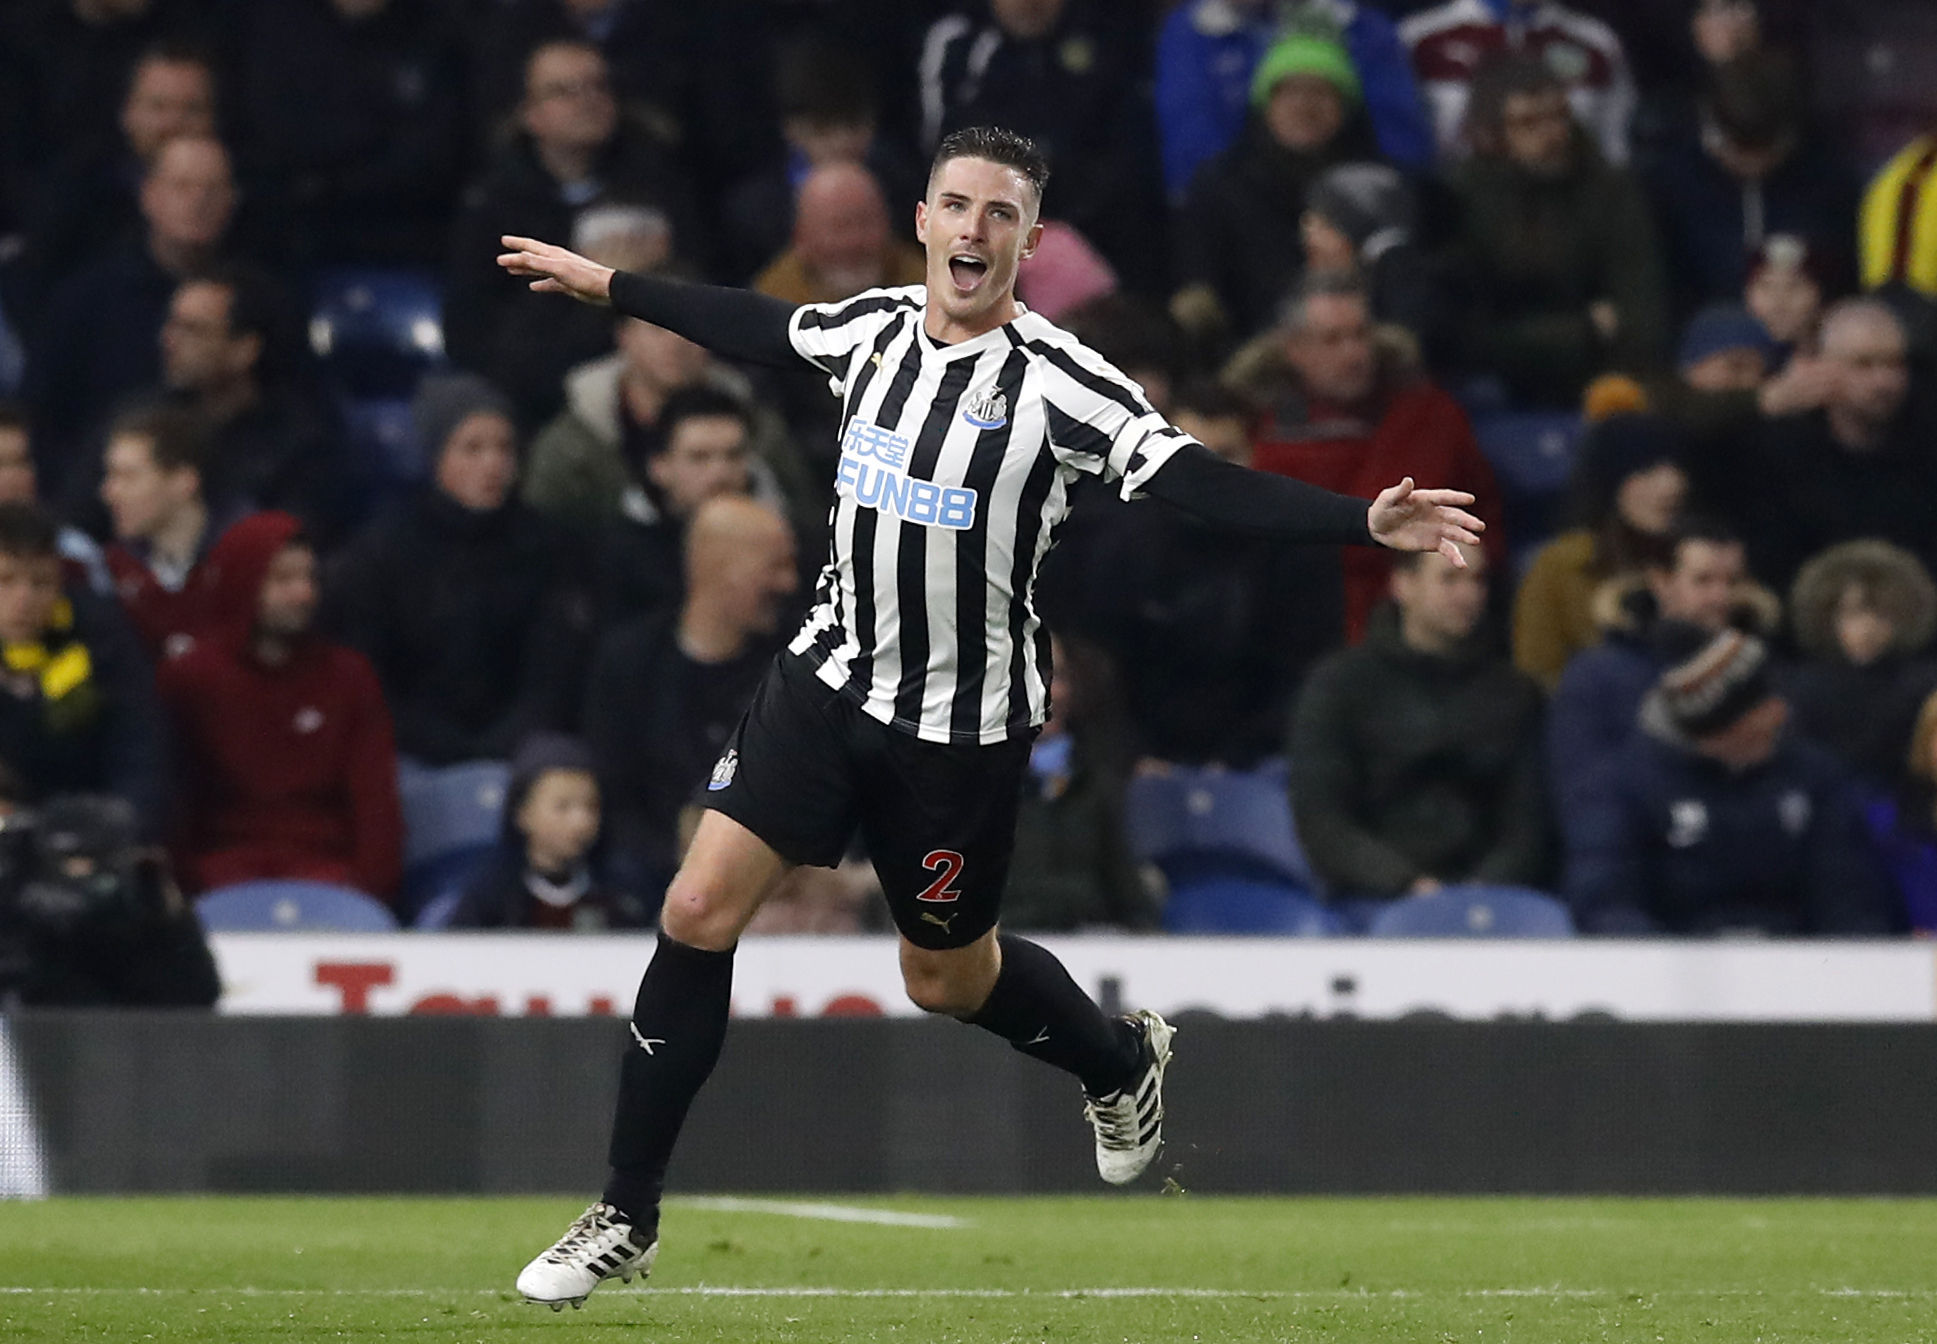 Newcastle United's Ciaran Clark celebrates scoring his side's second goal of the game during the Premier League match at Turf Moor, Burnley. PRESS ASSOCIATION Photo. Picture date: Monday November 26, 2018. See PA story SOCCER Burnley. Photo credit